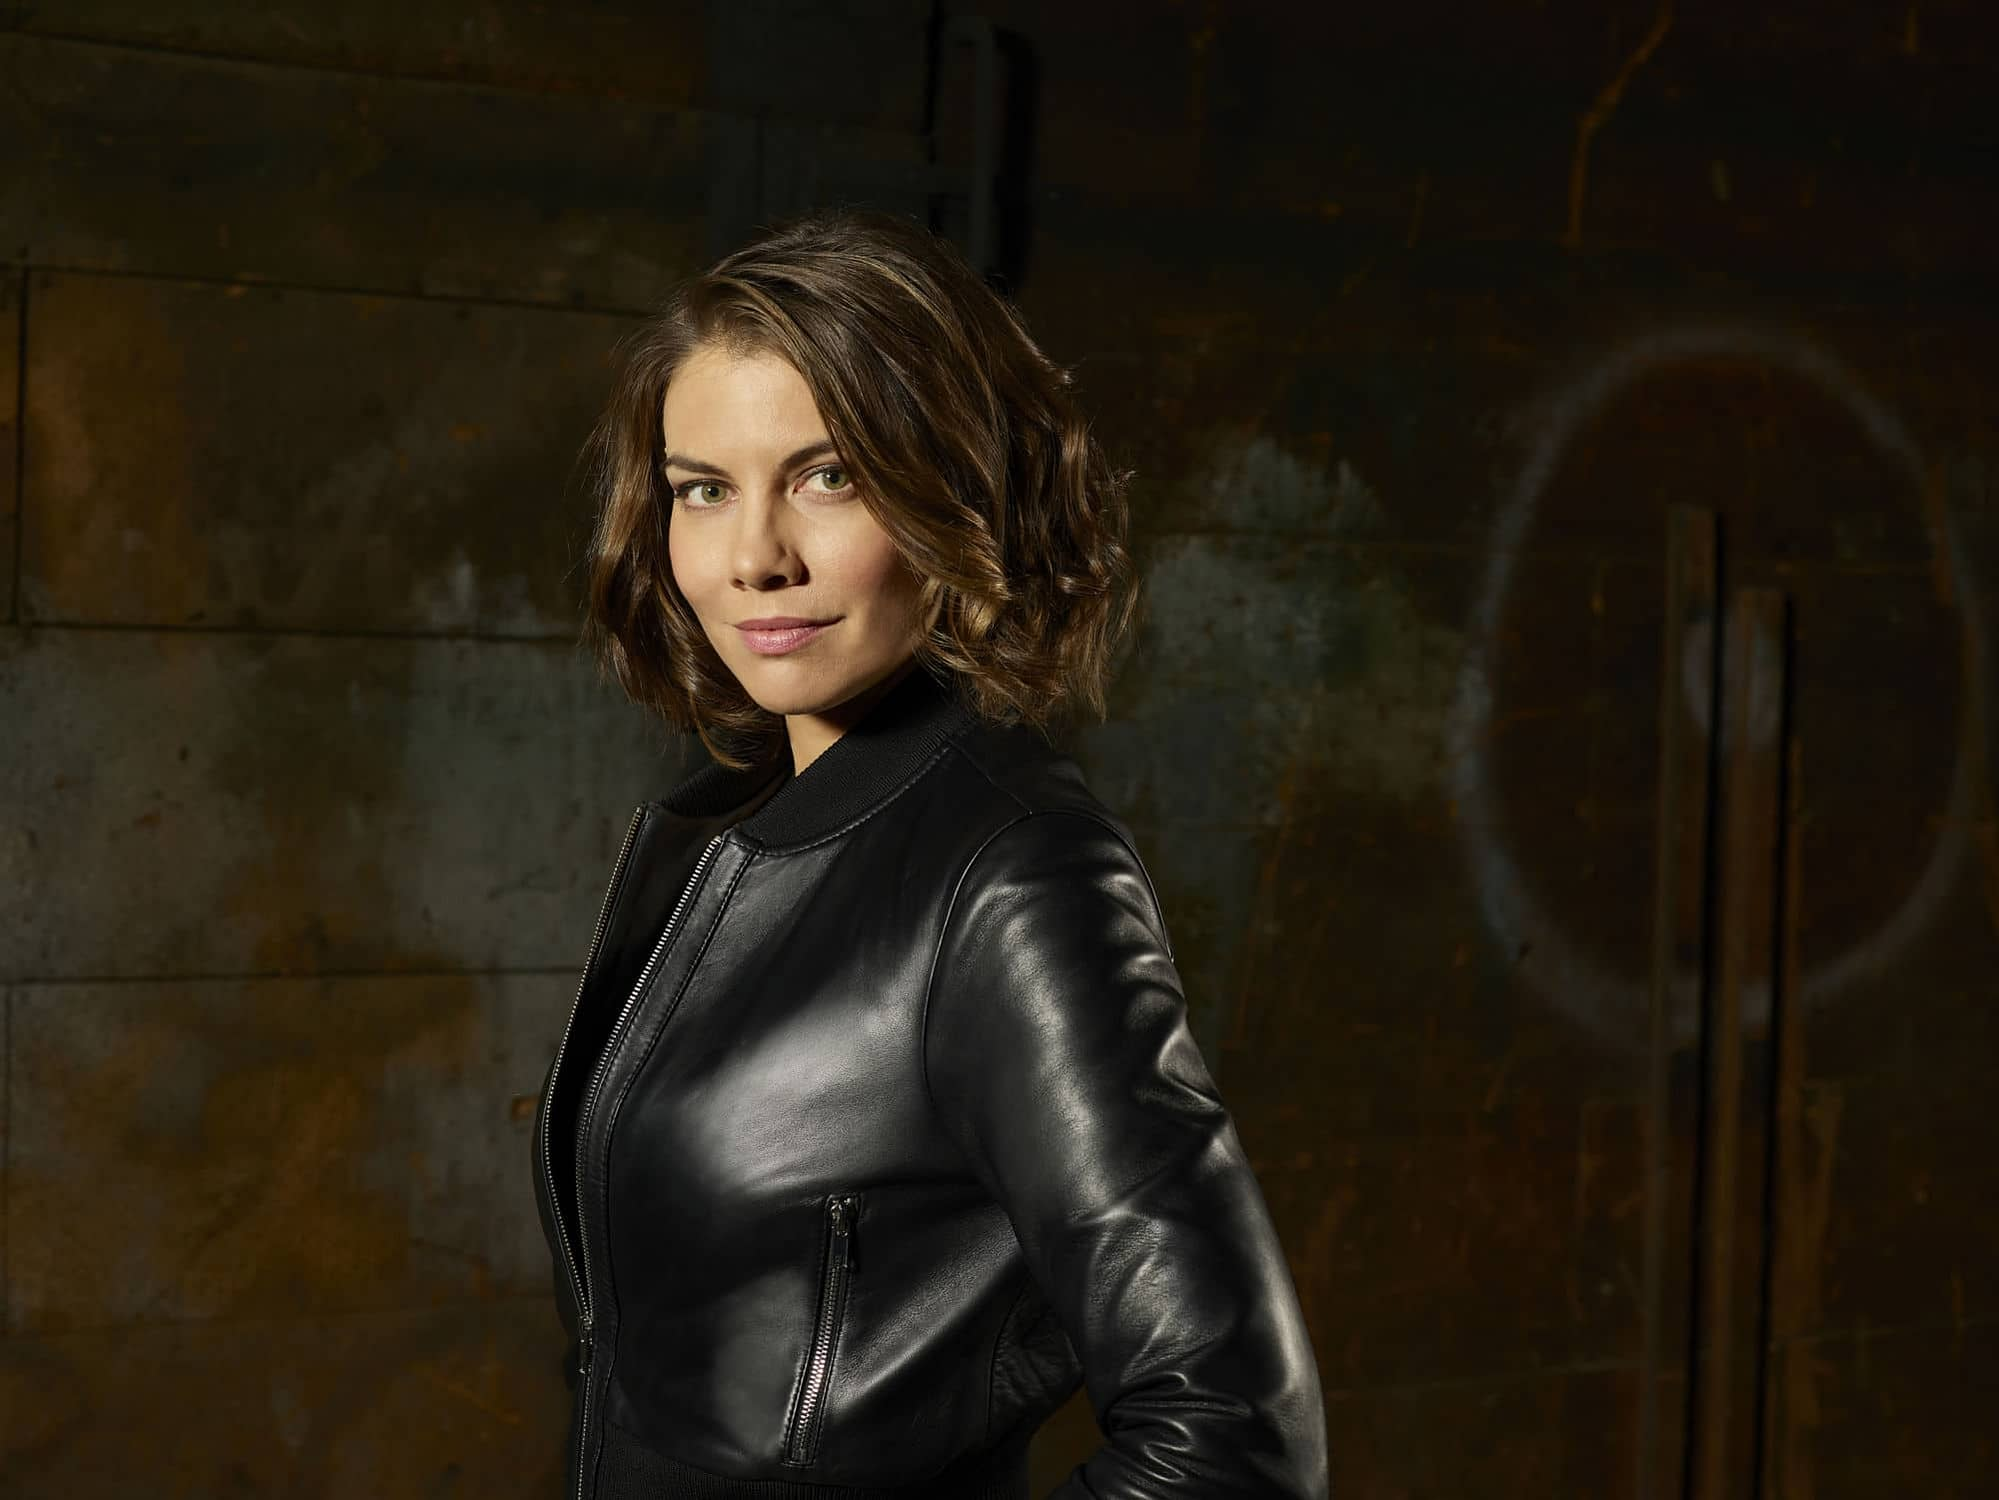 """'Whiskey Cavalier' Star Lauren Cohan on 'Walking Dead' Spinoff: """"May Have Been Some Conversations"""""""